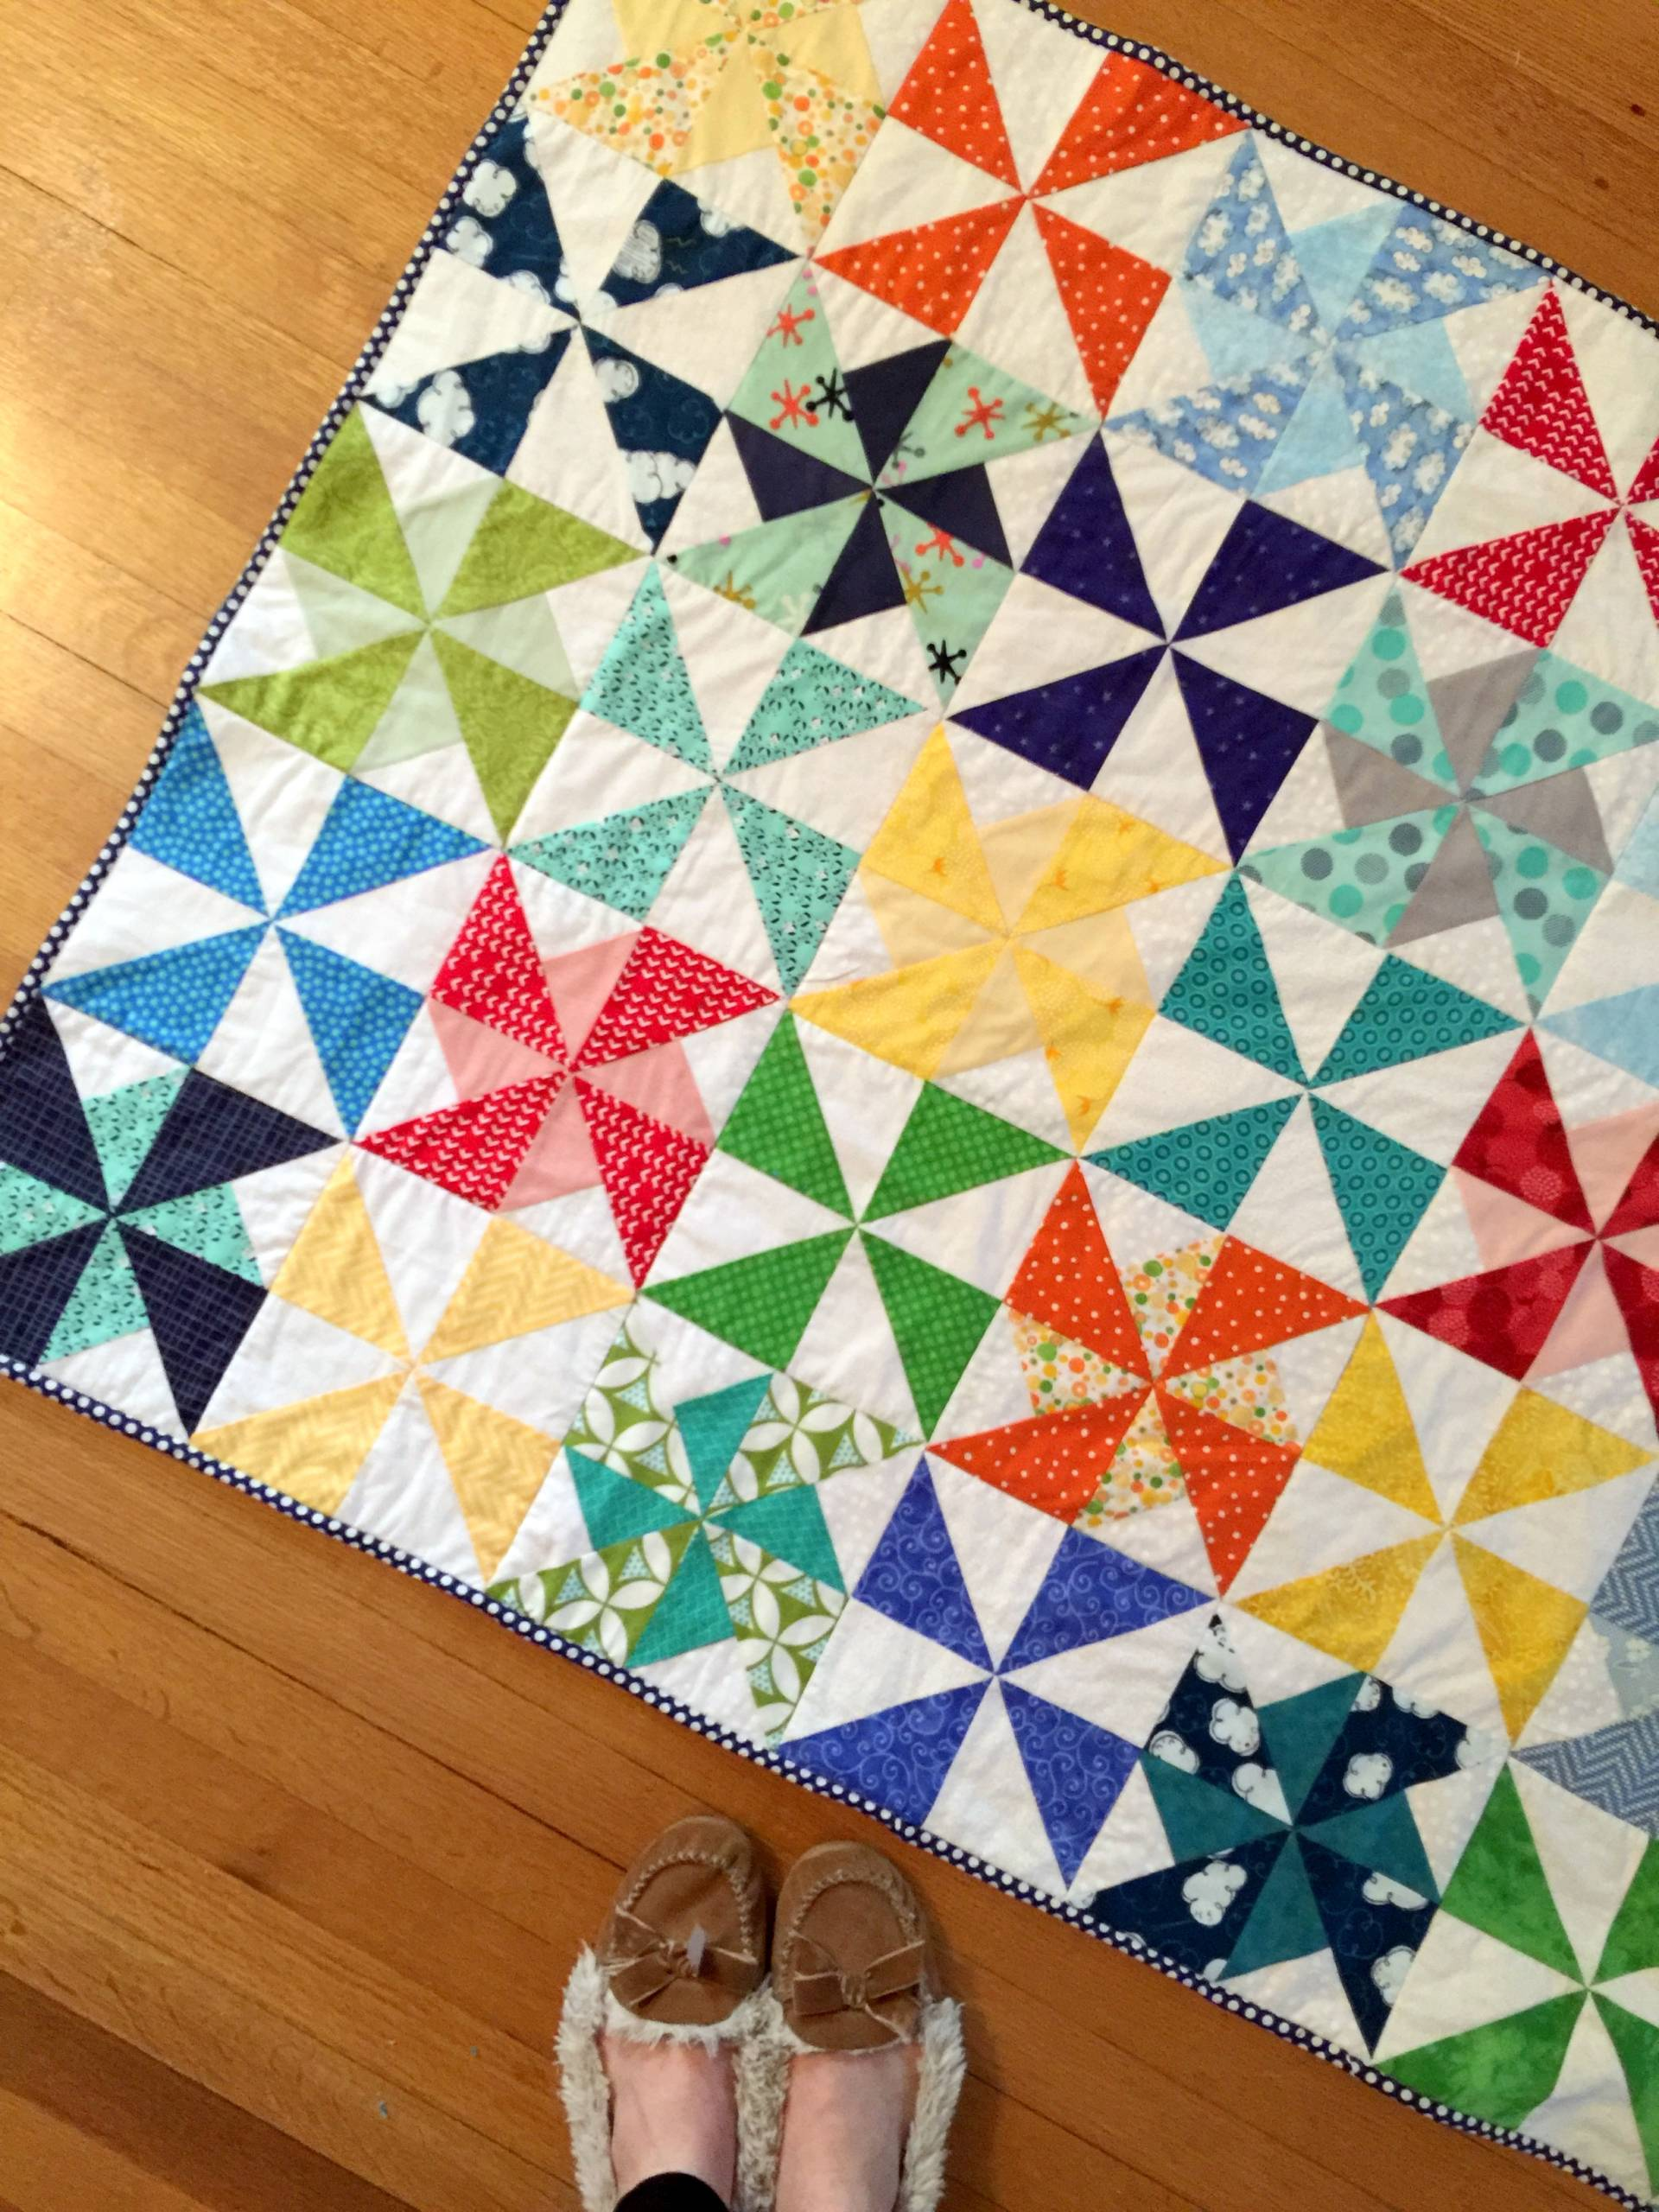 pinwheel quilt blocks on mostlysewing.com